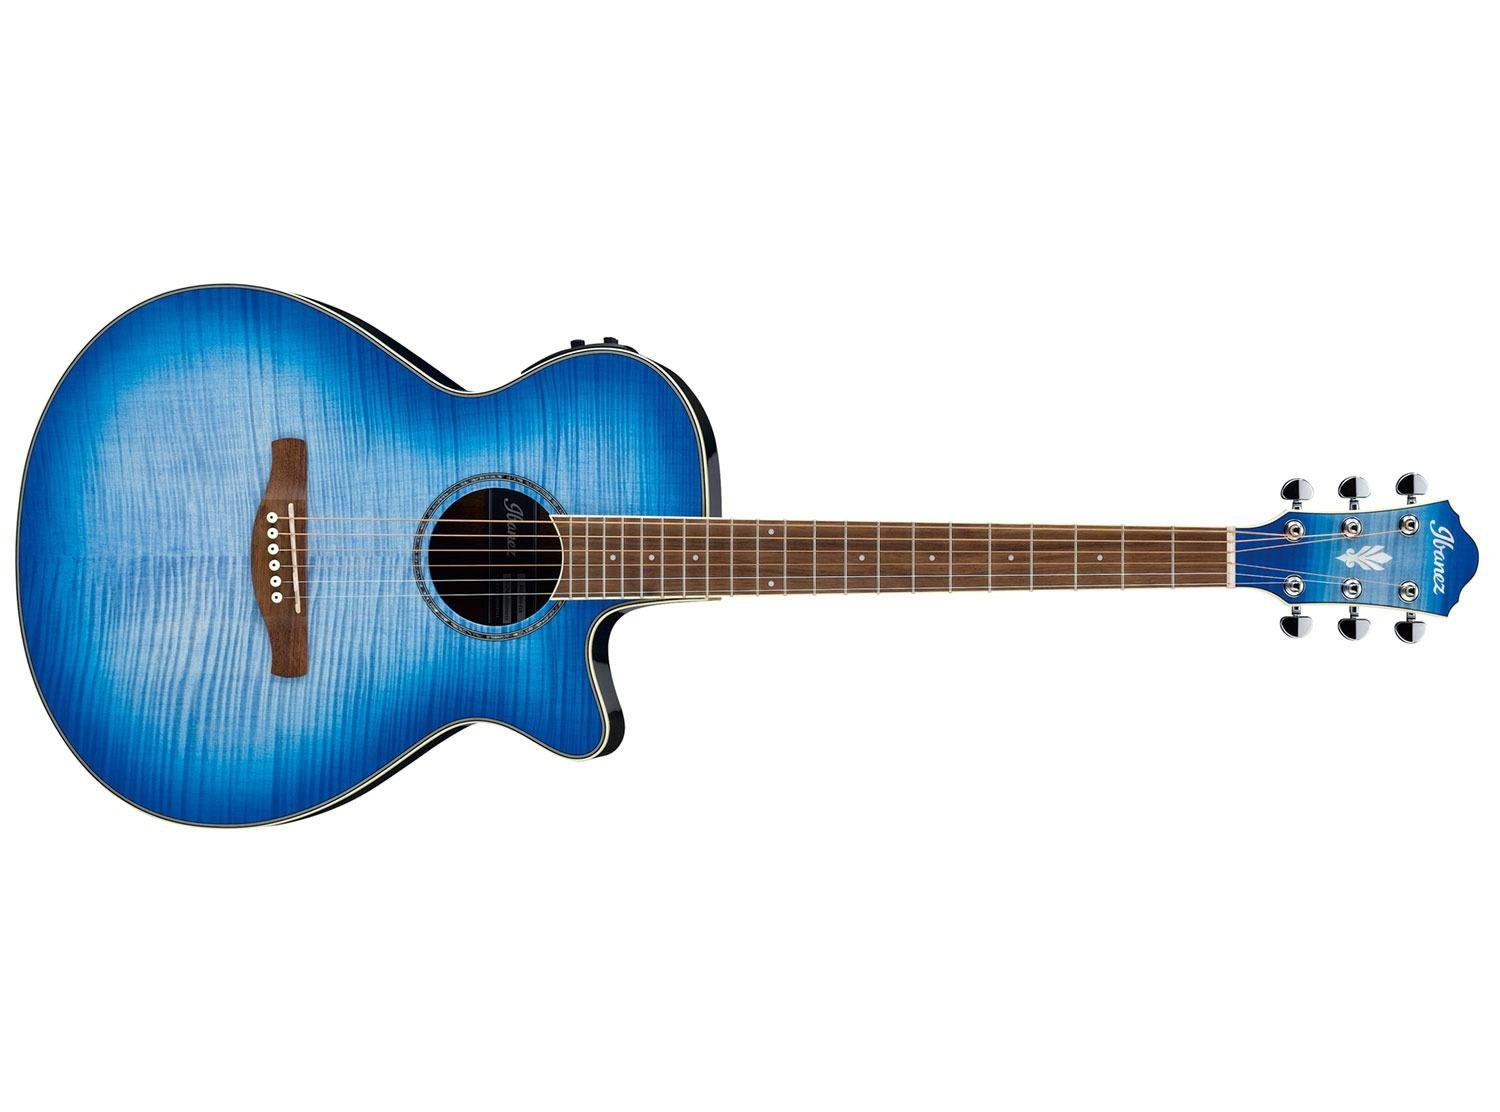 Ibanez AEG19II Acoustic Electric Guitar, Ocean Blue Burst